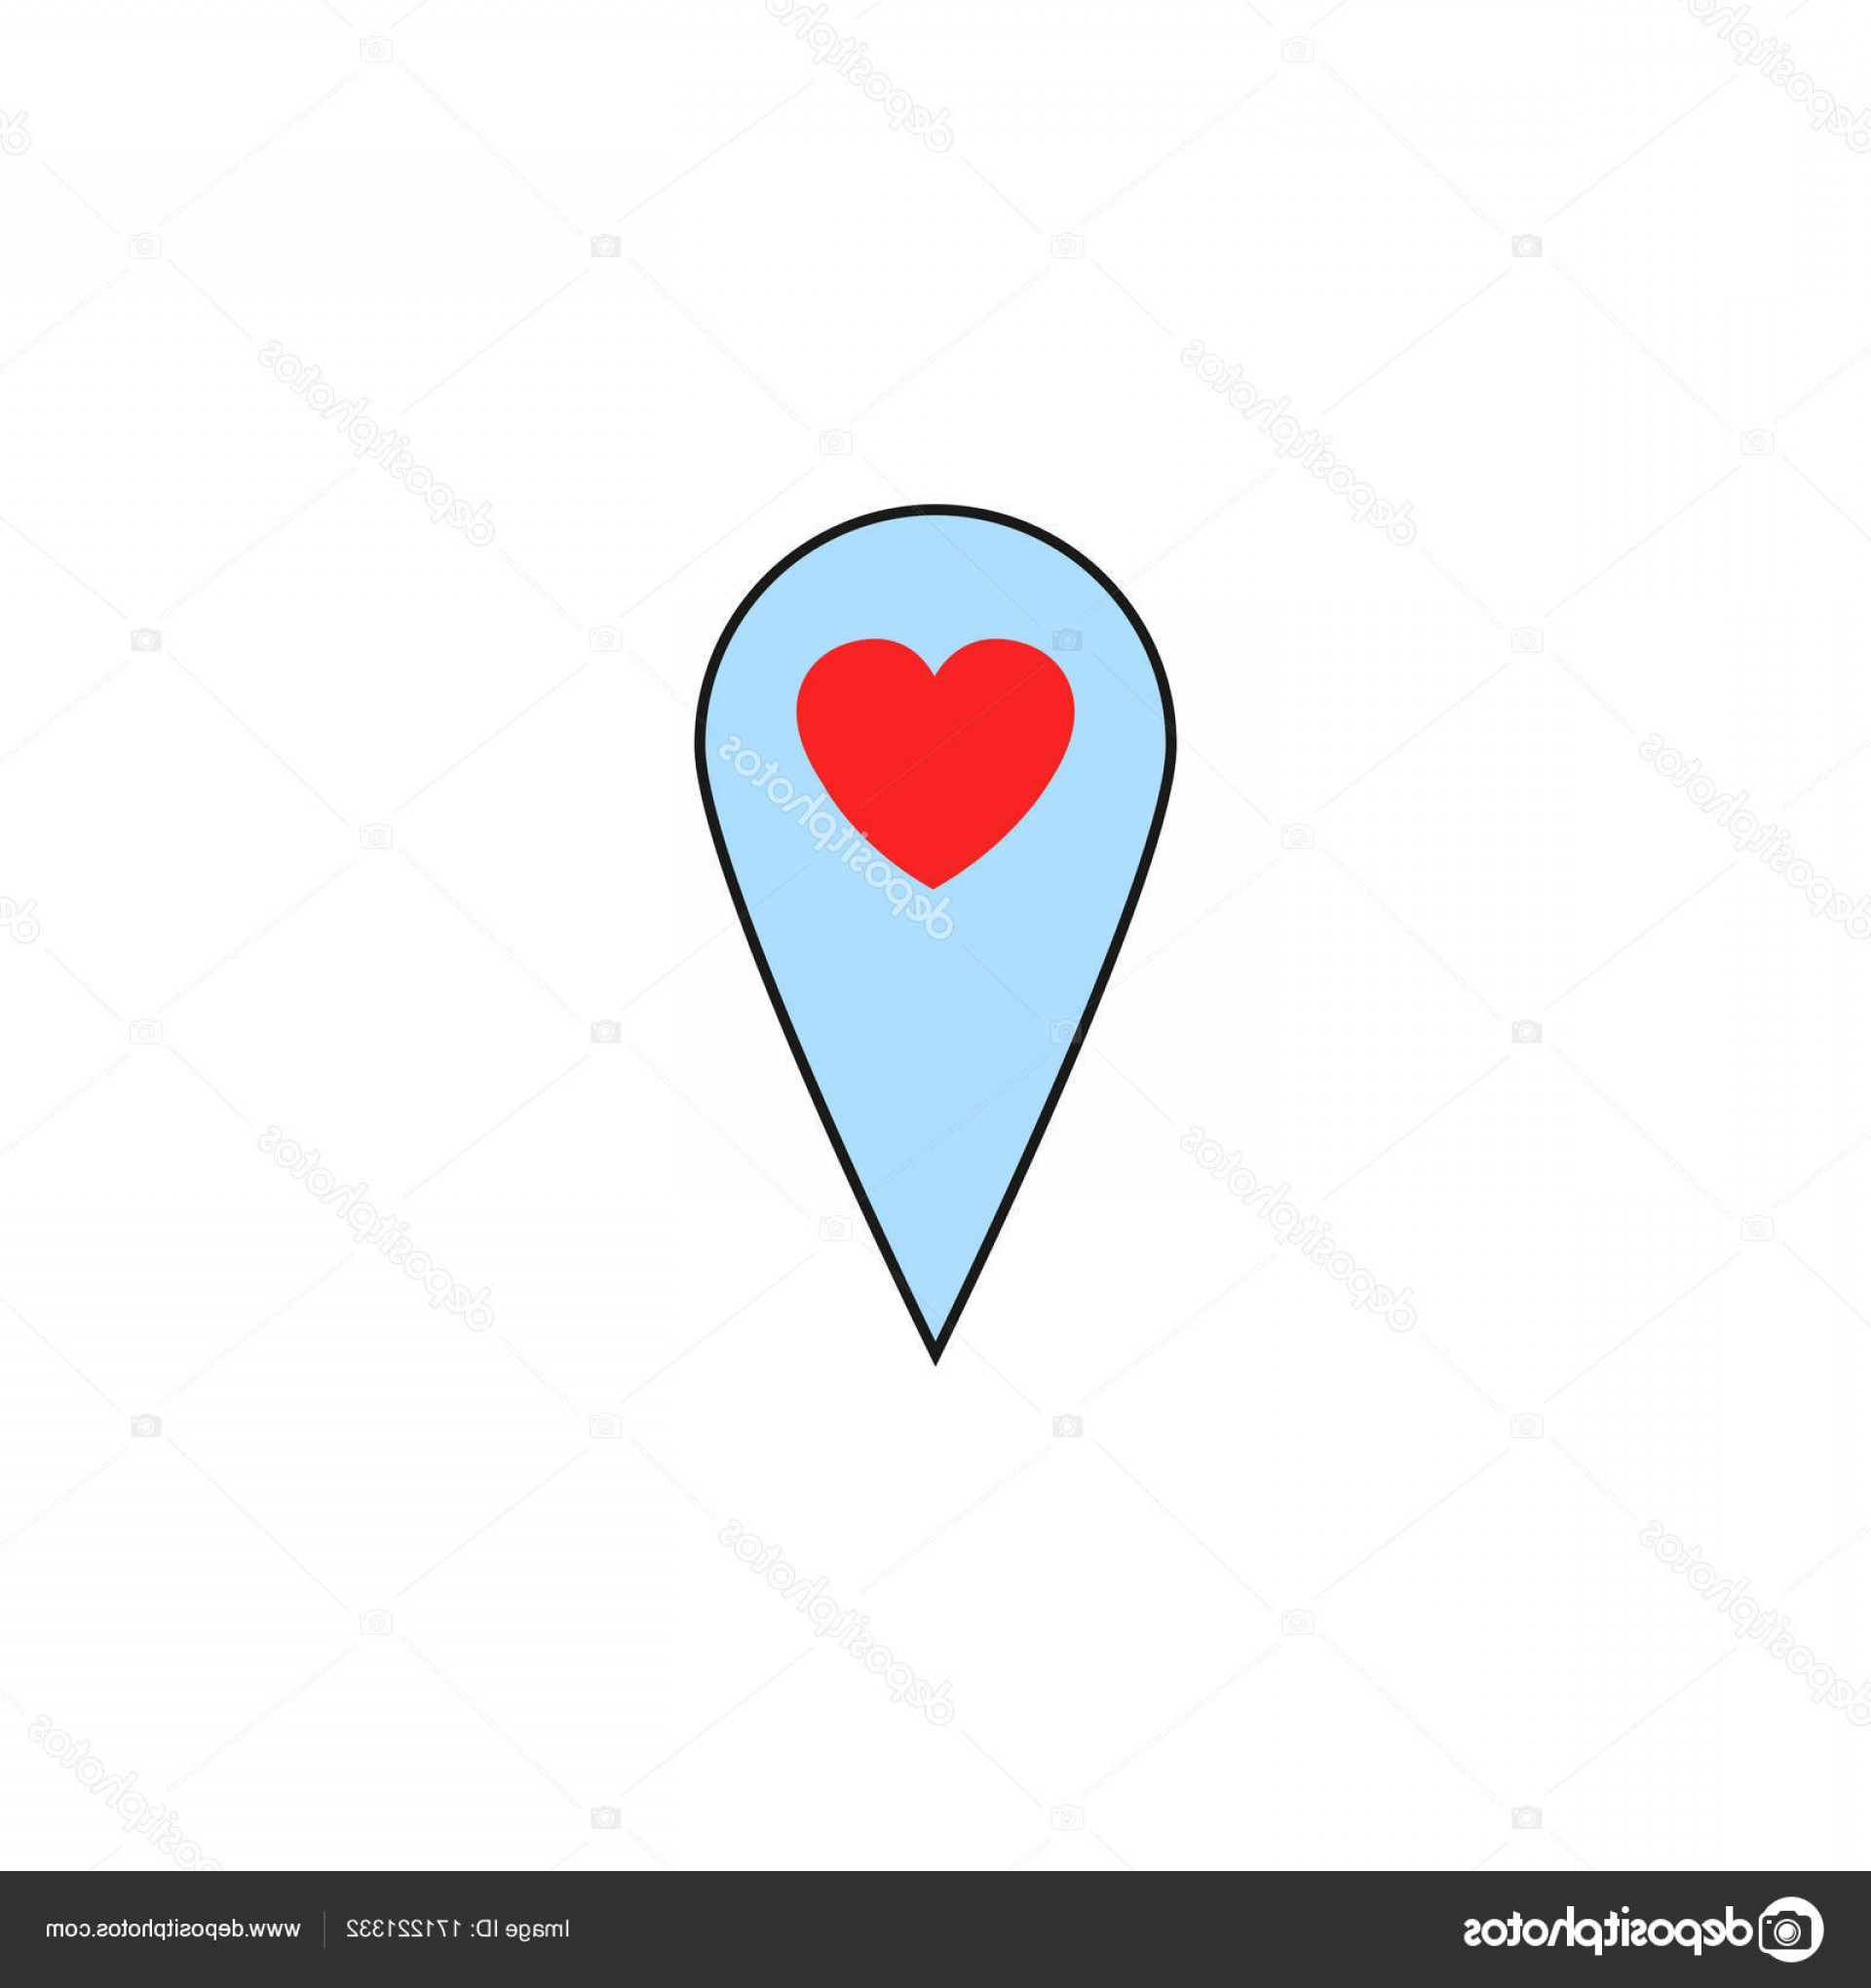 Solid Heart Vector Drawing: Stock Illustration Map Pointer With Heart Solid